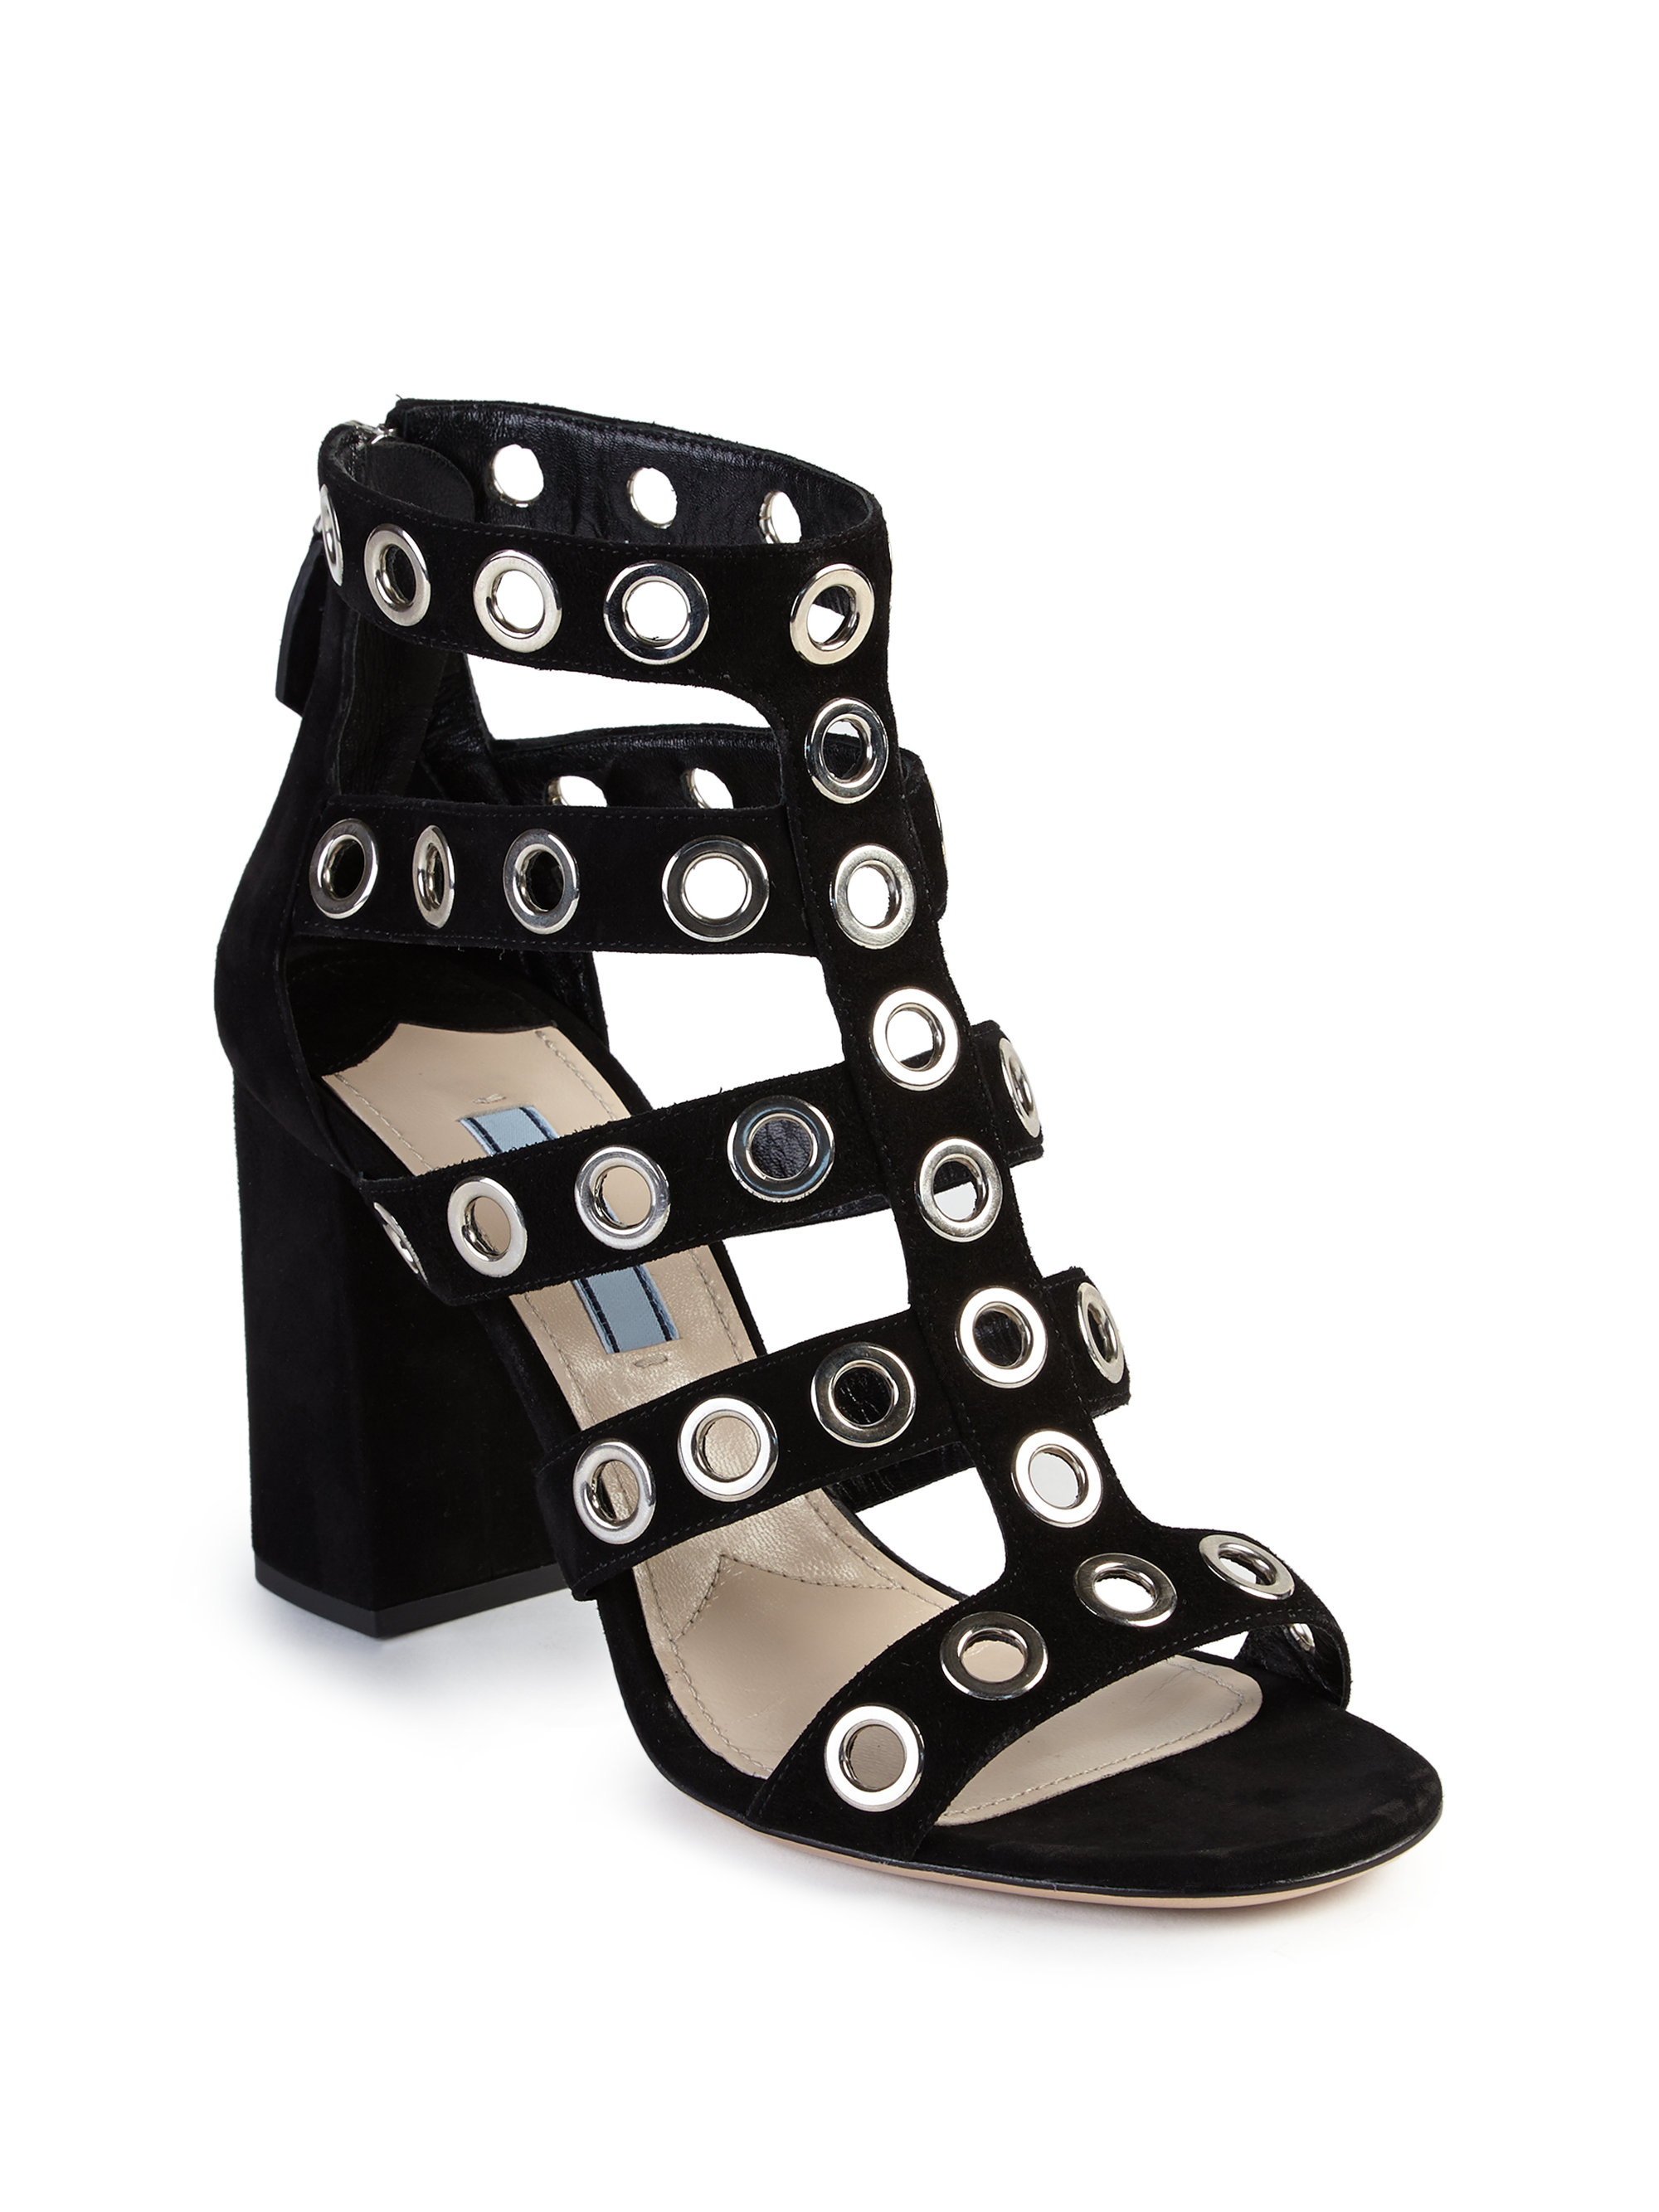 Prada Grommet Cage Sandals cheap price from china outlet the cheapest buy cheap fast delivery low price fee shipping G0C1qI1U